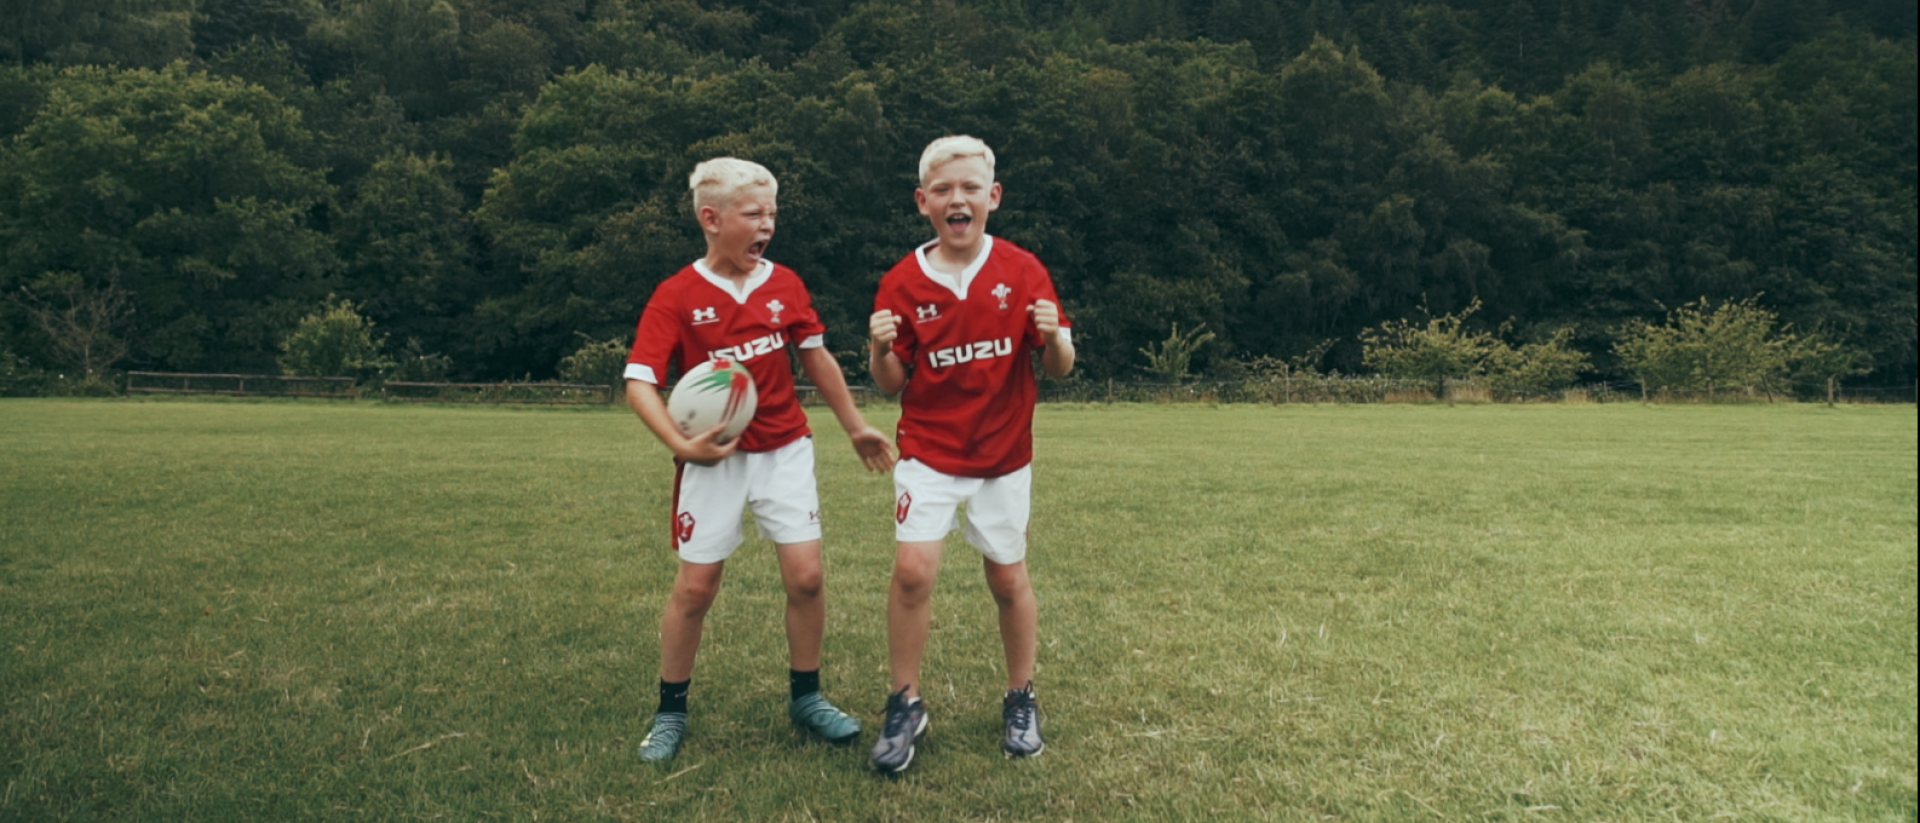 Two young boys playing rugby in Welsh kits